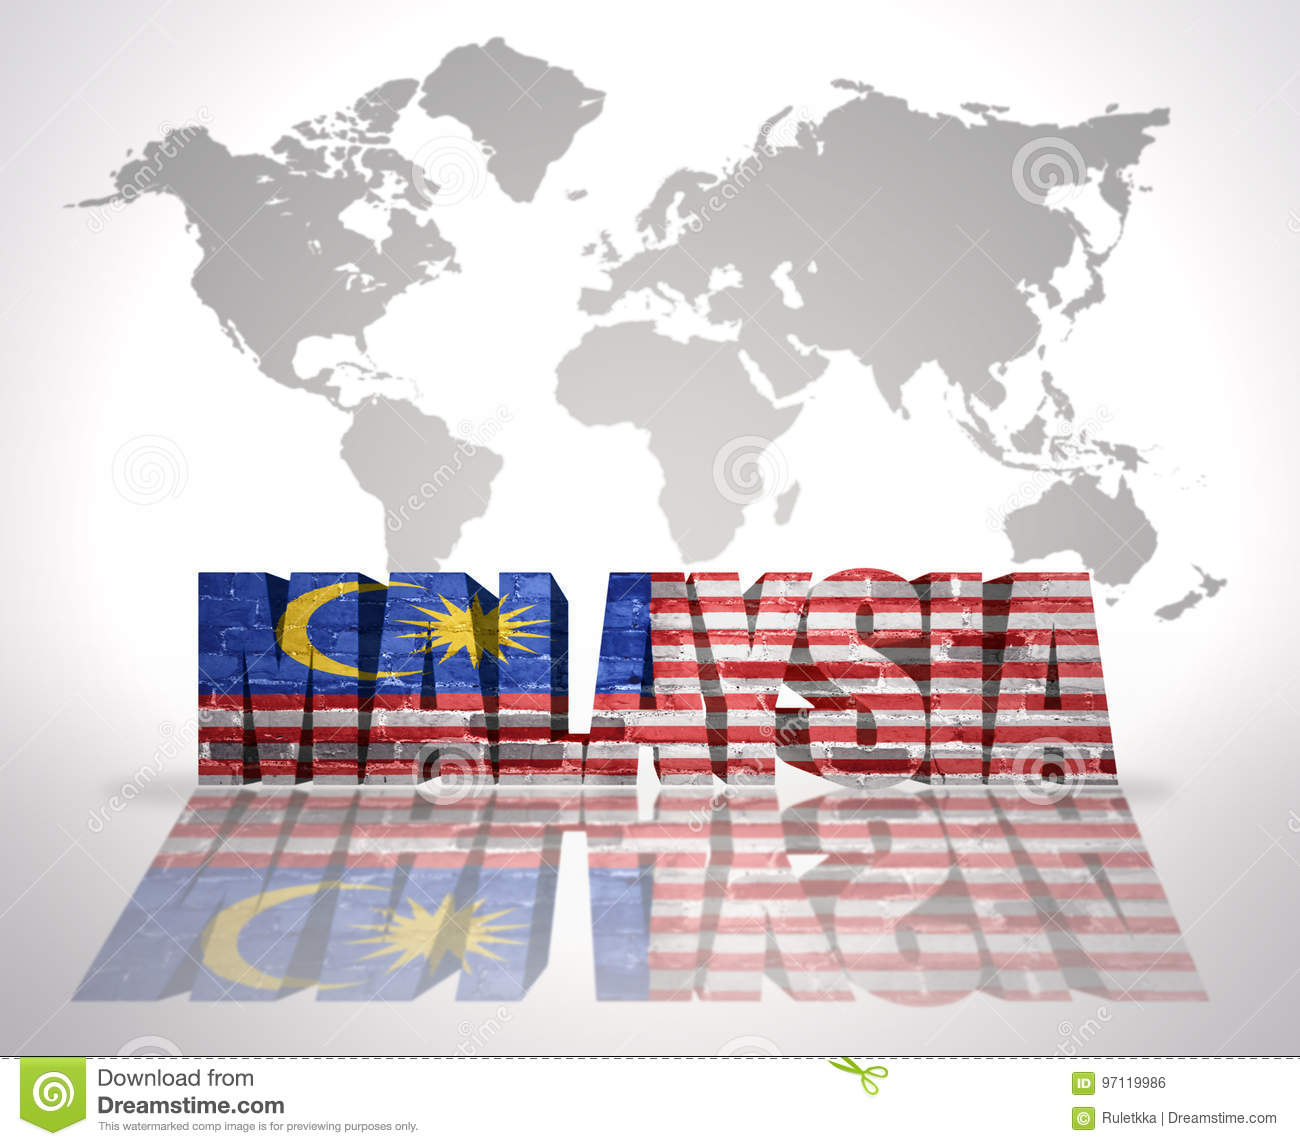 Malaysia On The World Map.Word Malaysia On A World Map Background Stock Illustration